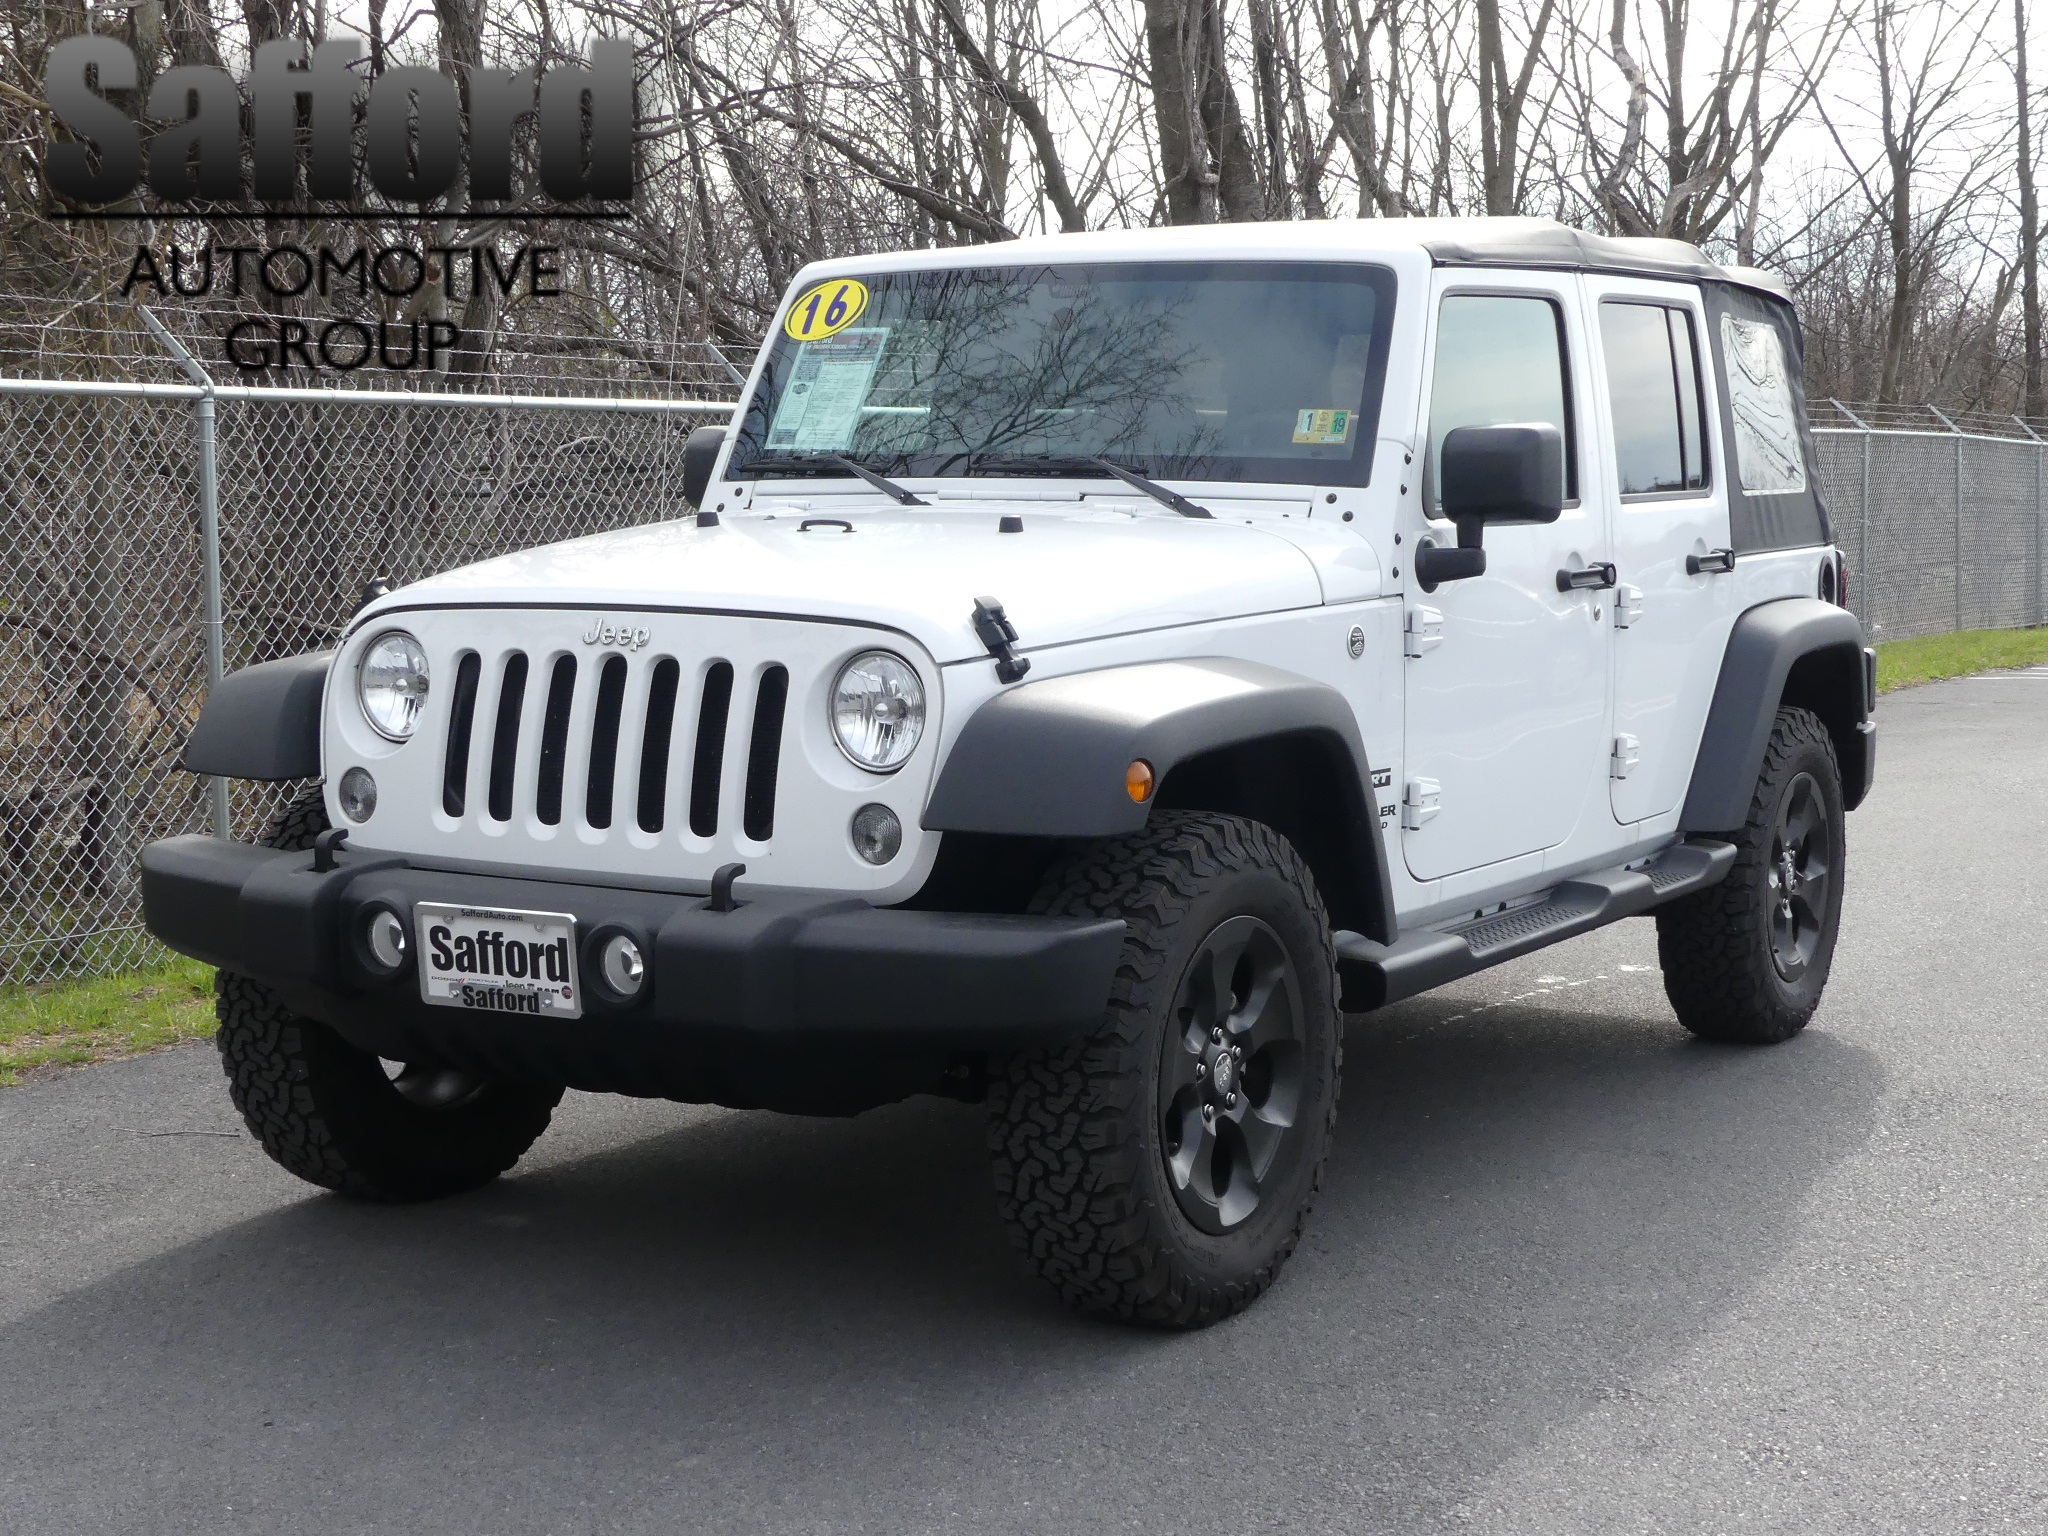 quarter jbp car long review wrangler reviews rubicon term article update photo jeep first